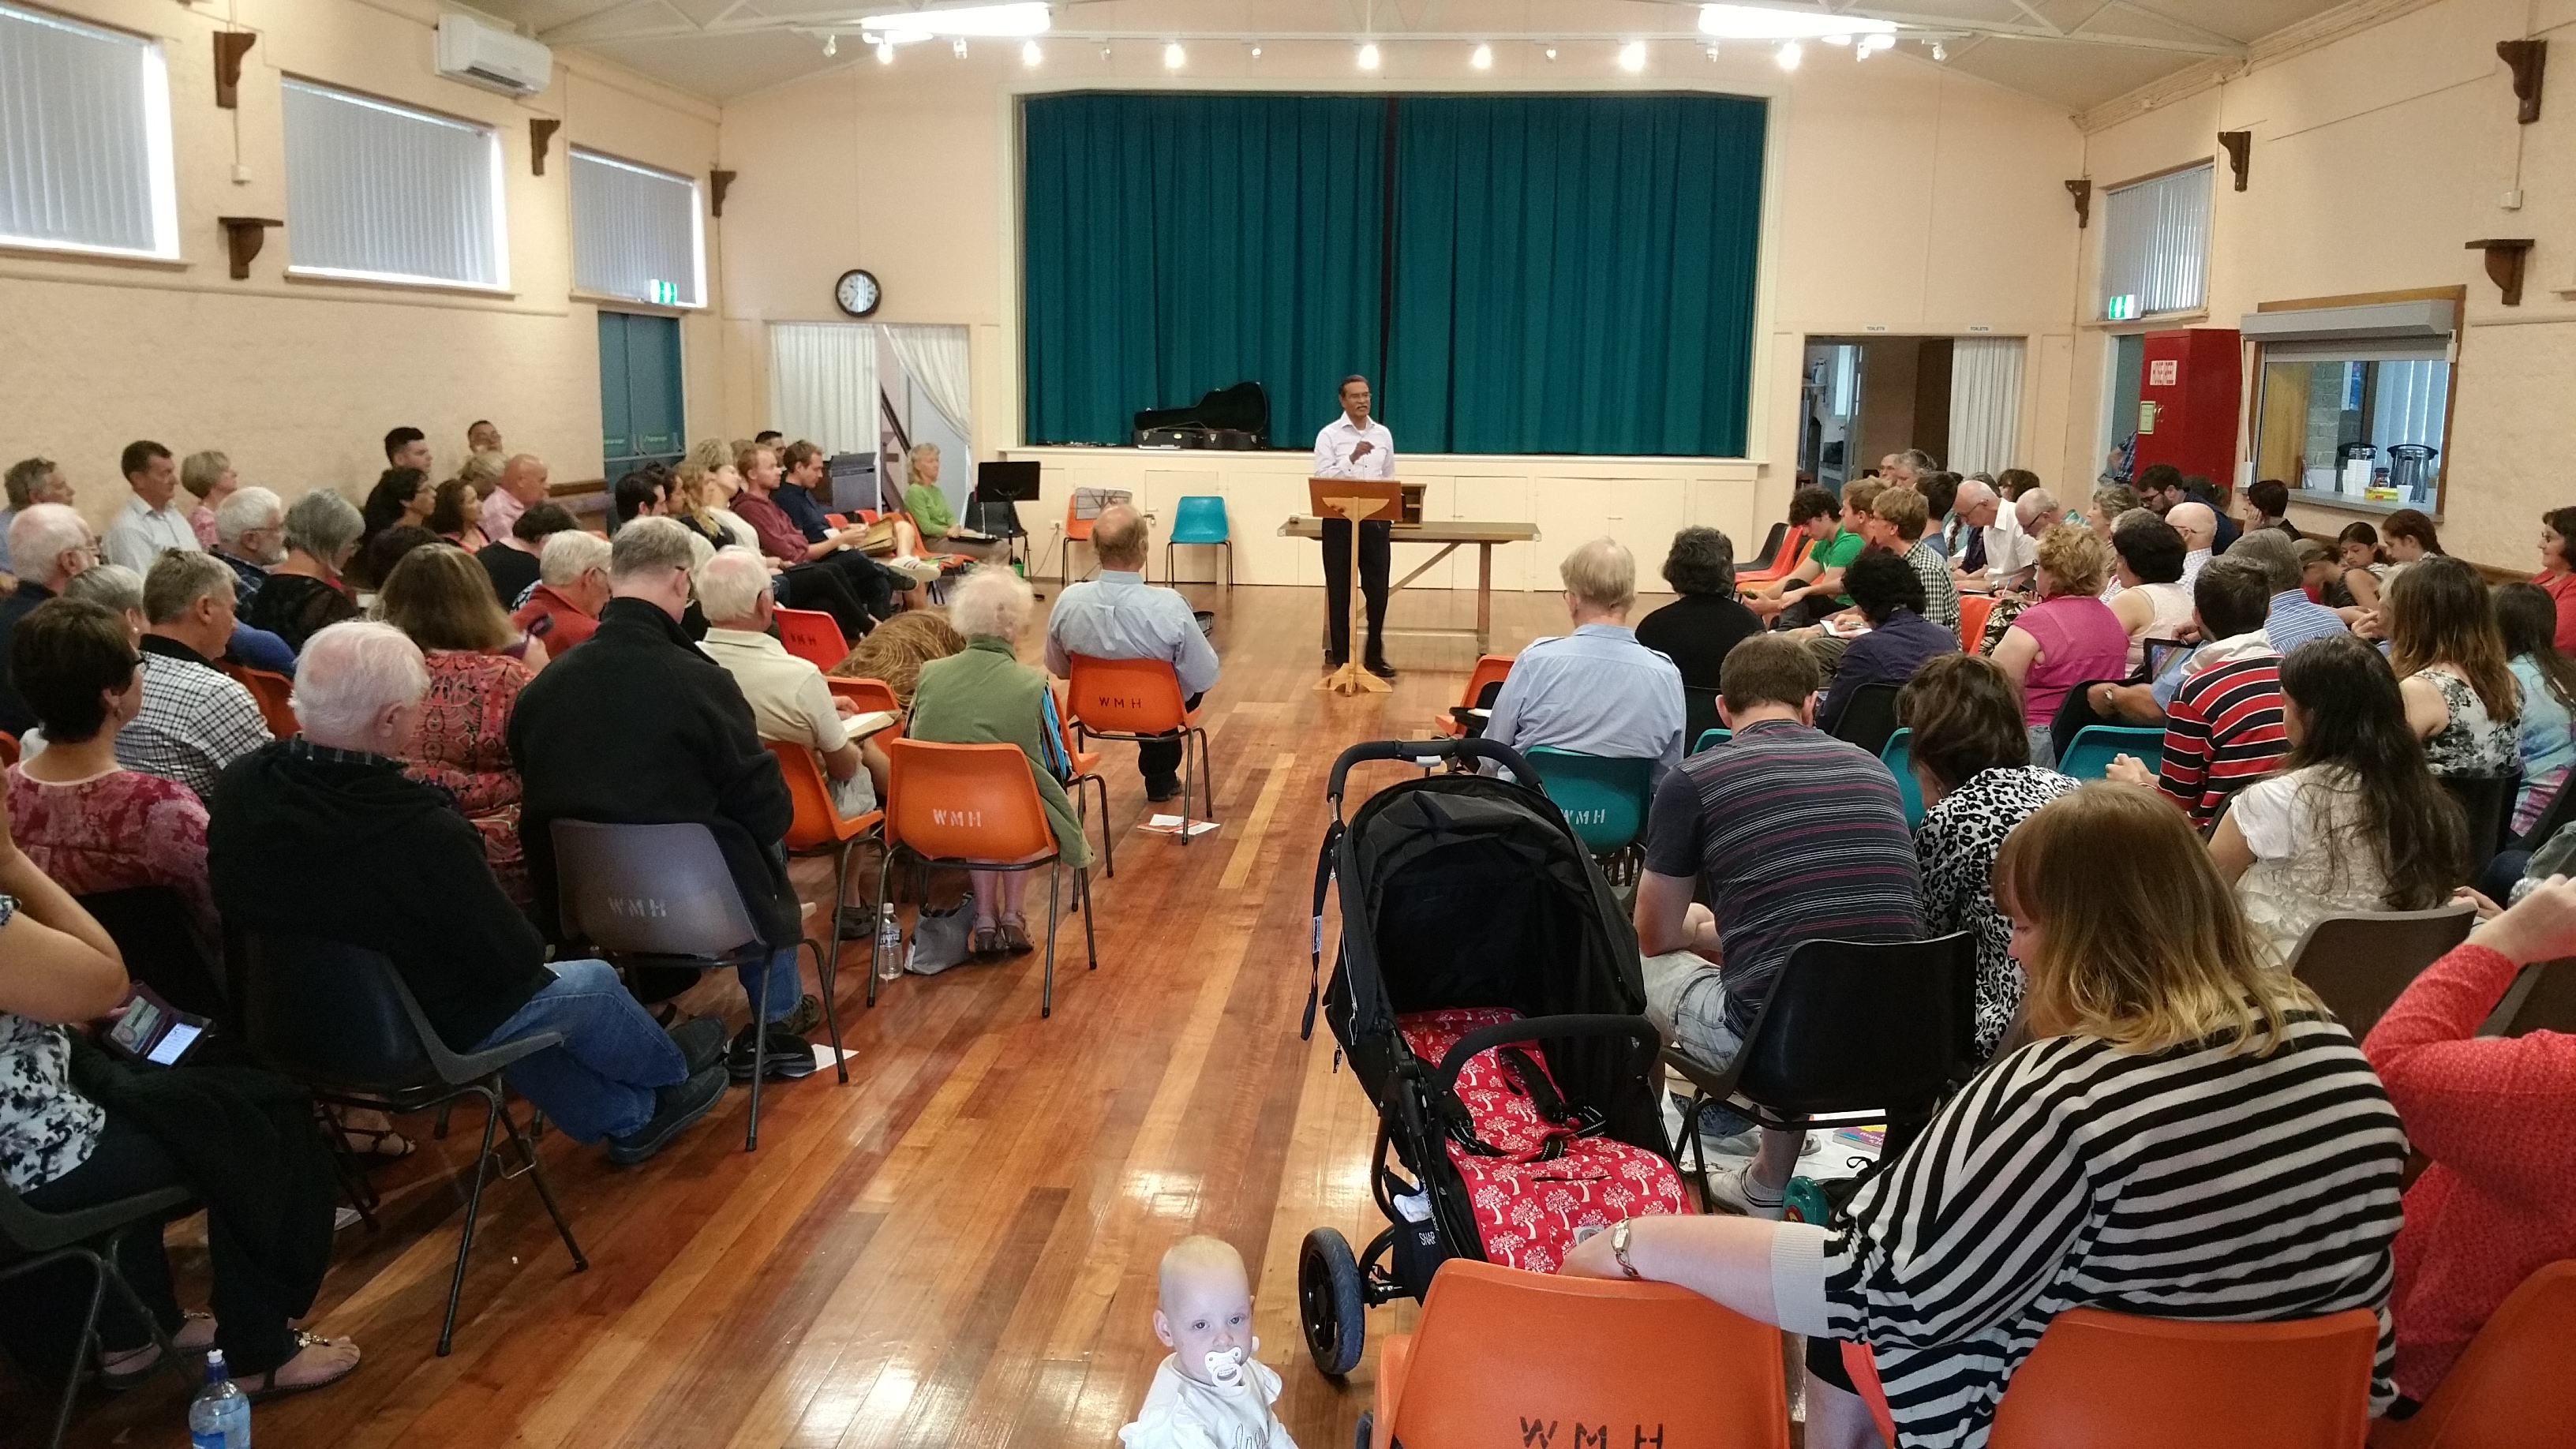 Sunday Communion Meeting in the Town Hall.